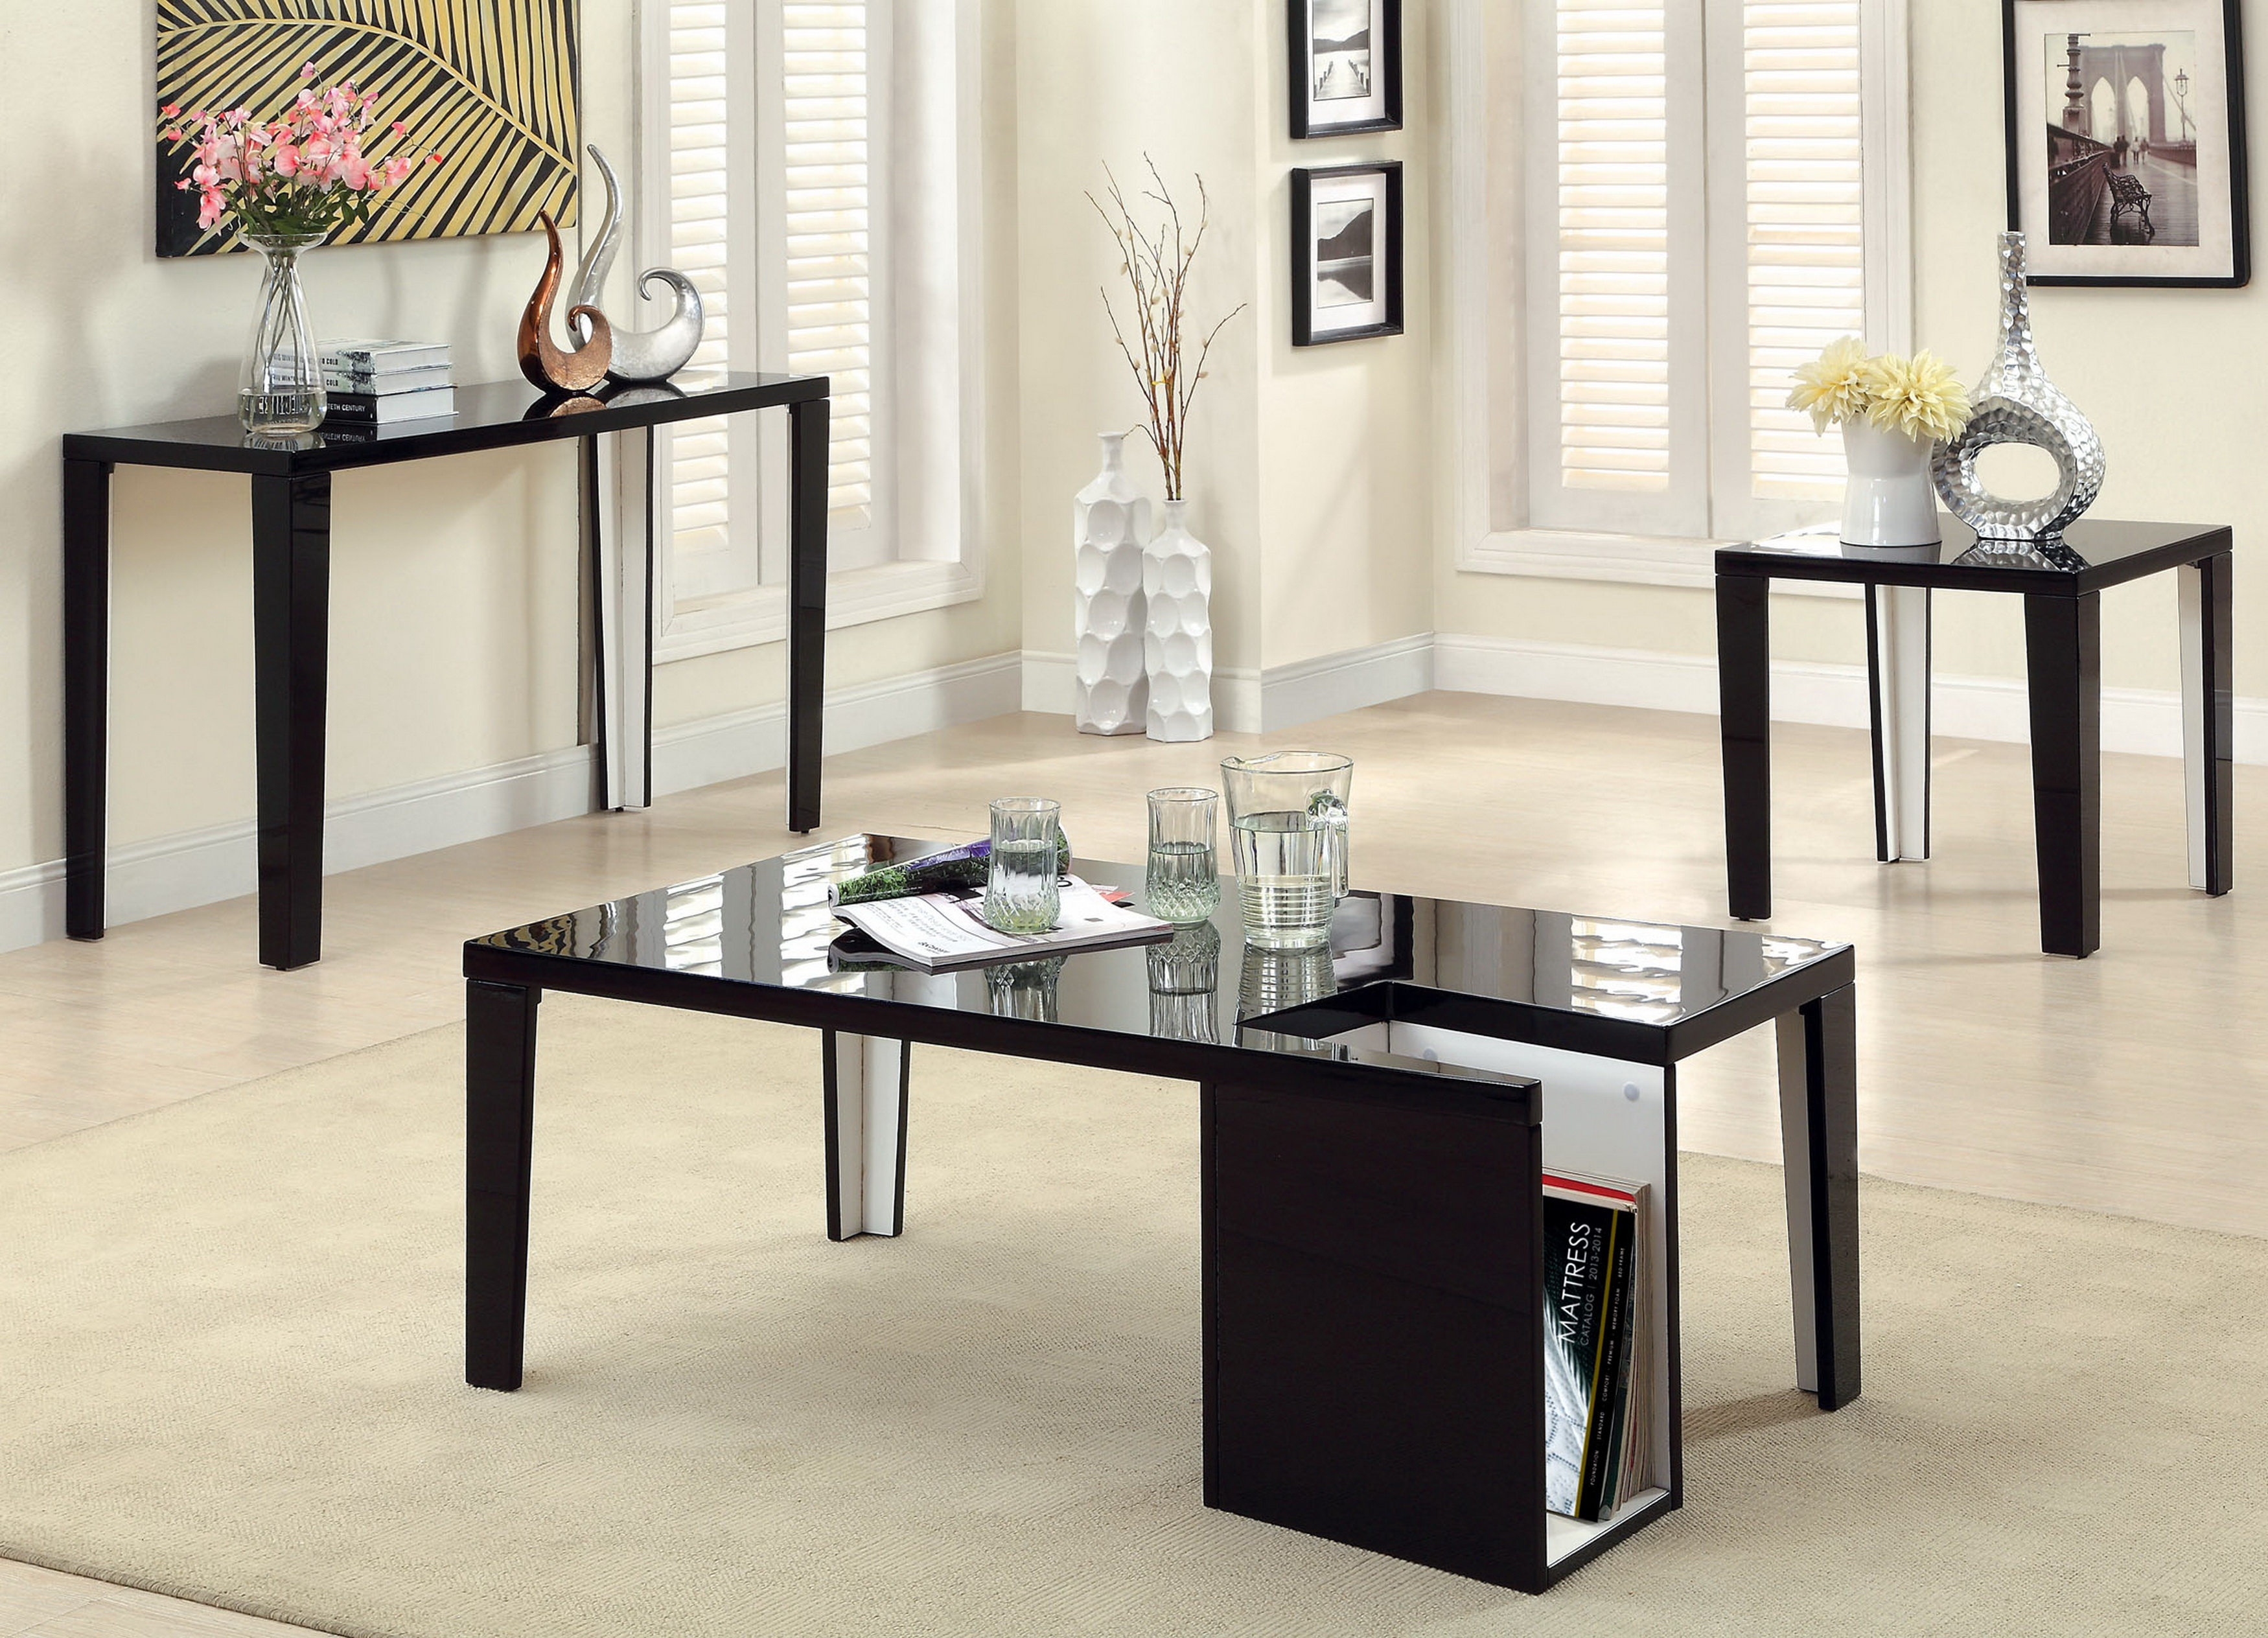 furniture america khroma high gloss piece accent table set prod sofa and vintage drop leaf dining round glass industrial pipe end pottery barn beds contemporary lamps small